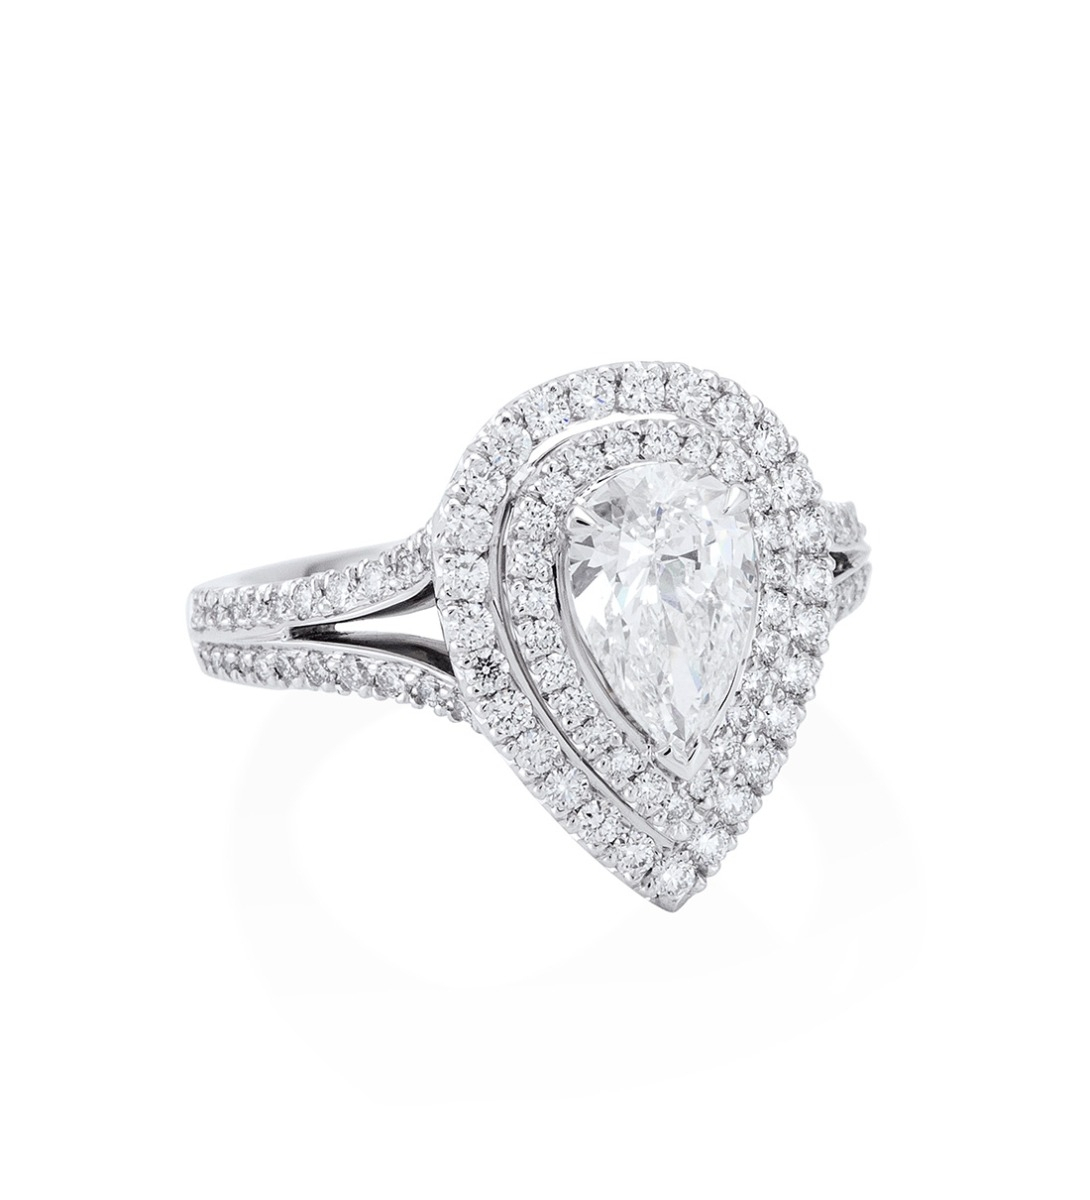 Double Vintage Pear Cut Diamond Ring With Split Shoulders | Boodles In Most Recent Classic Teardrop Halo Rings (View 12 of 25)